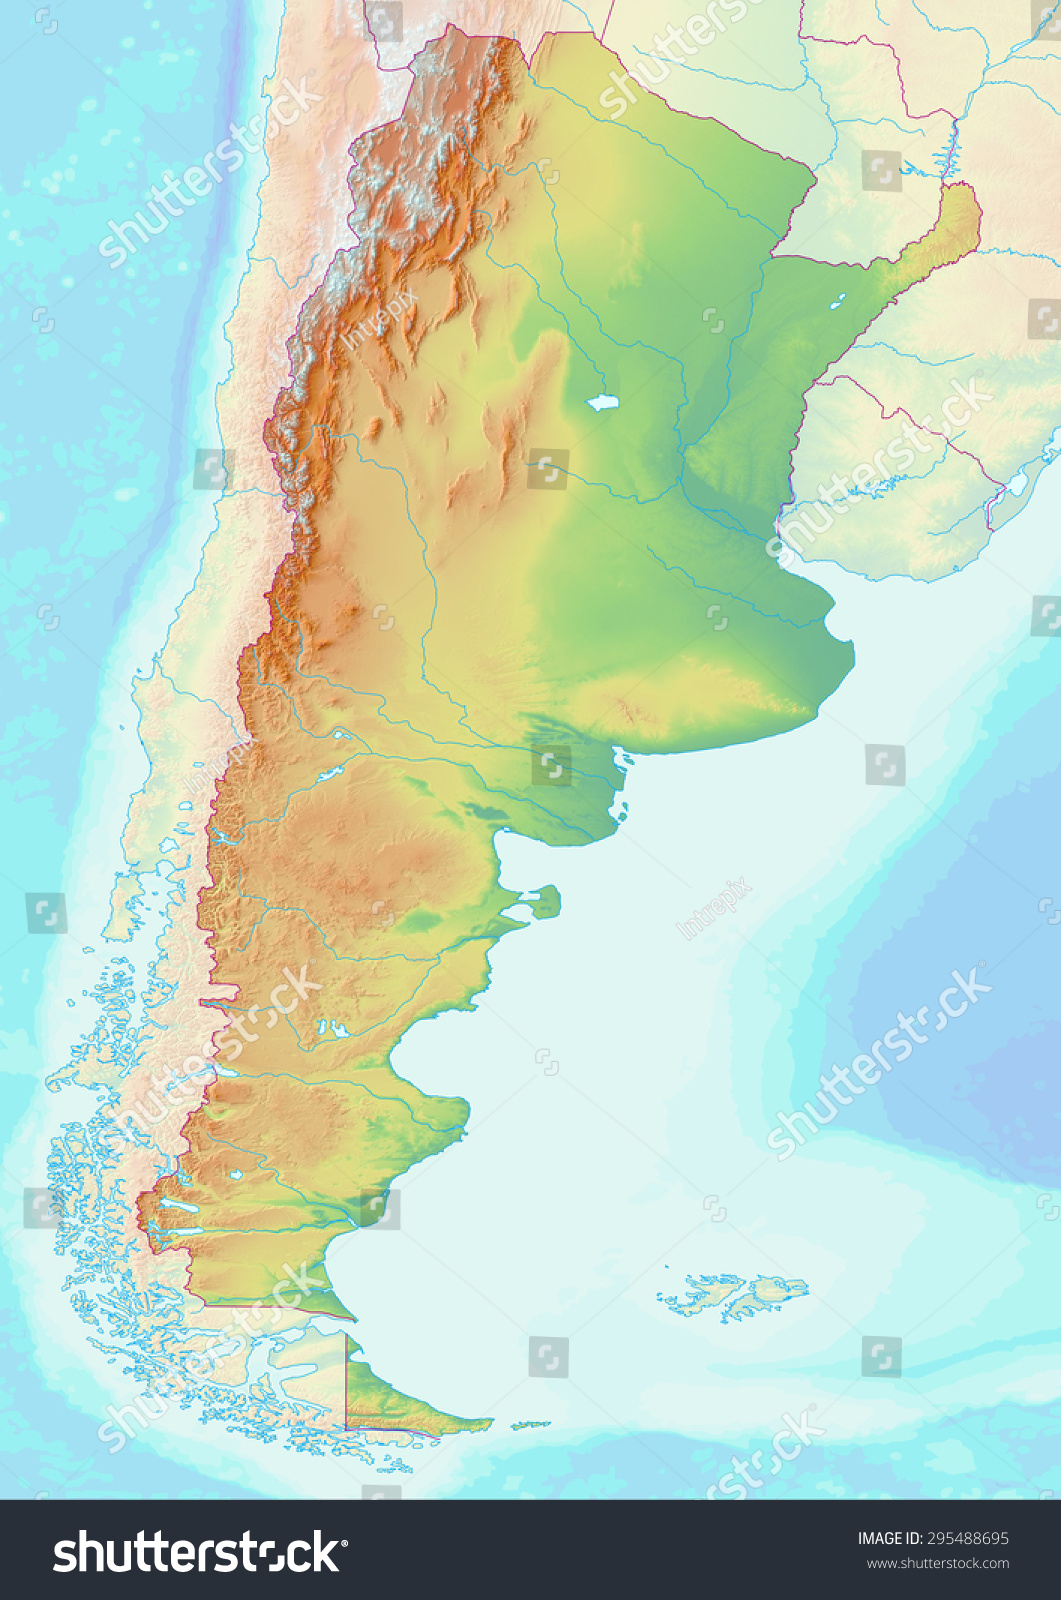 Topographic Map Argentina Shaded Relief Elevation Stock - Argentina elevation map